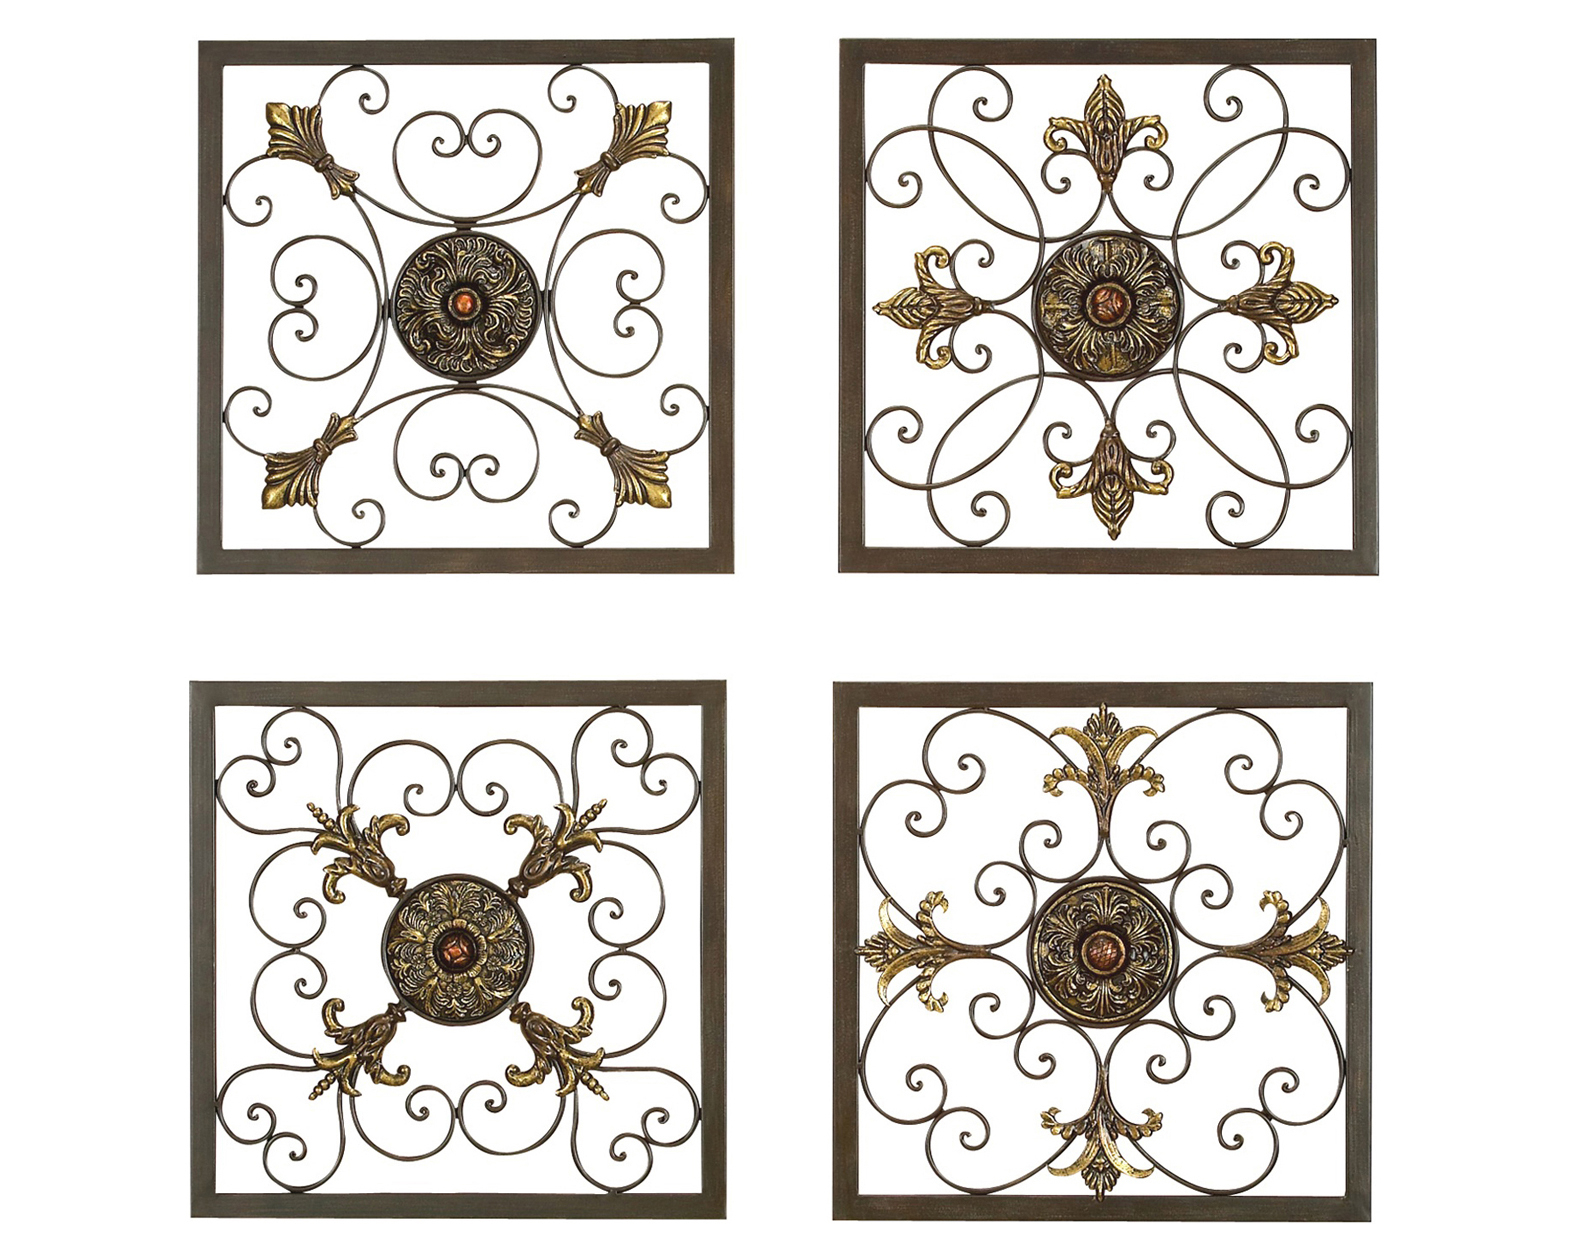 Tuscan Grilles Metal Wall Panels Set Art As Decor Decoration Intended For Scroll Panel Wall Decor (View 26 of 30)